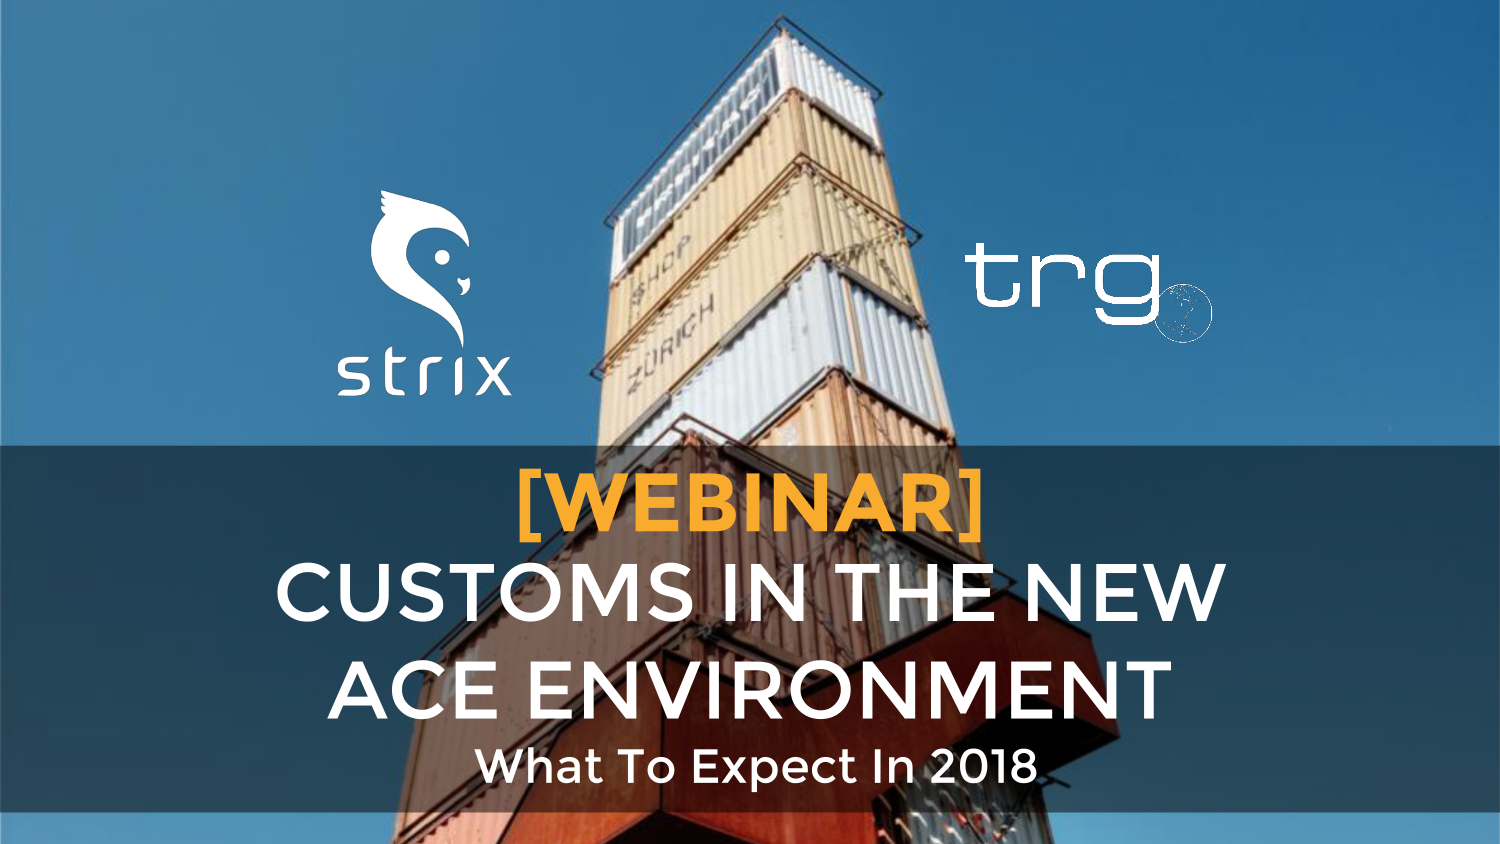 [Webinar] Customs in the New ACE Environment: What to Expect in 2018